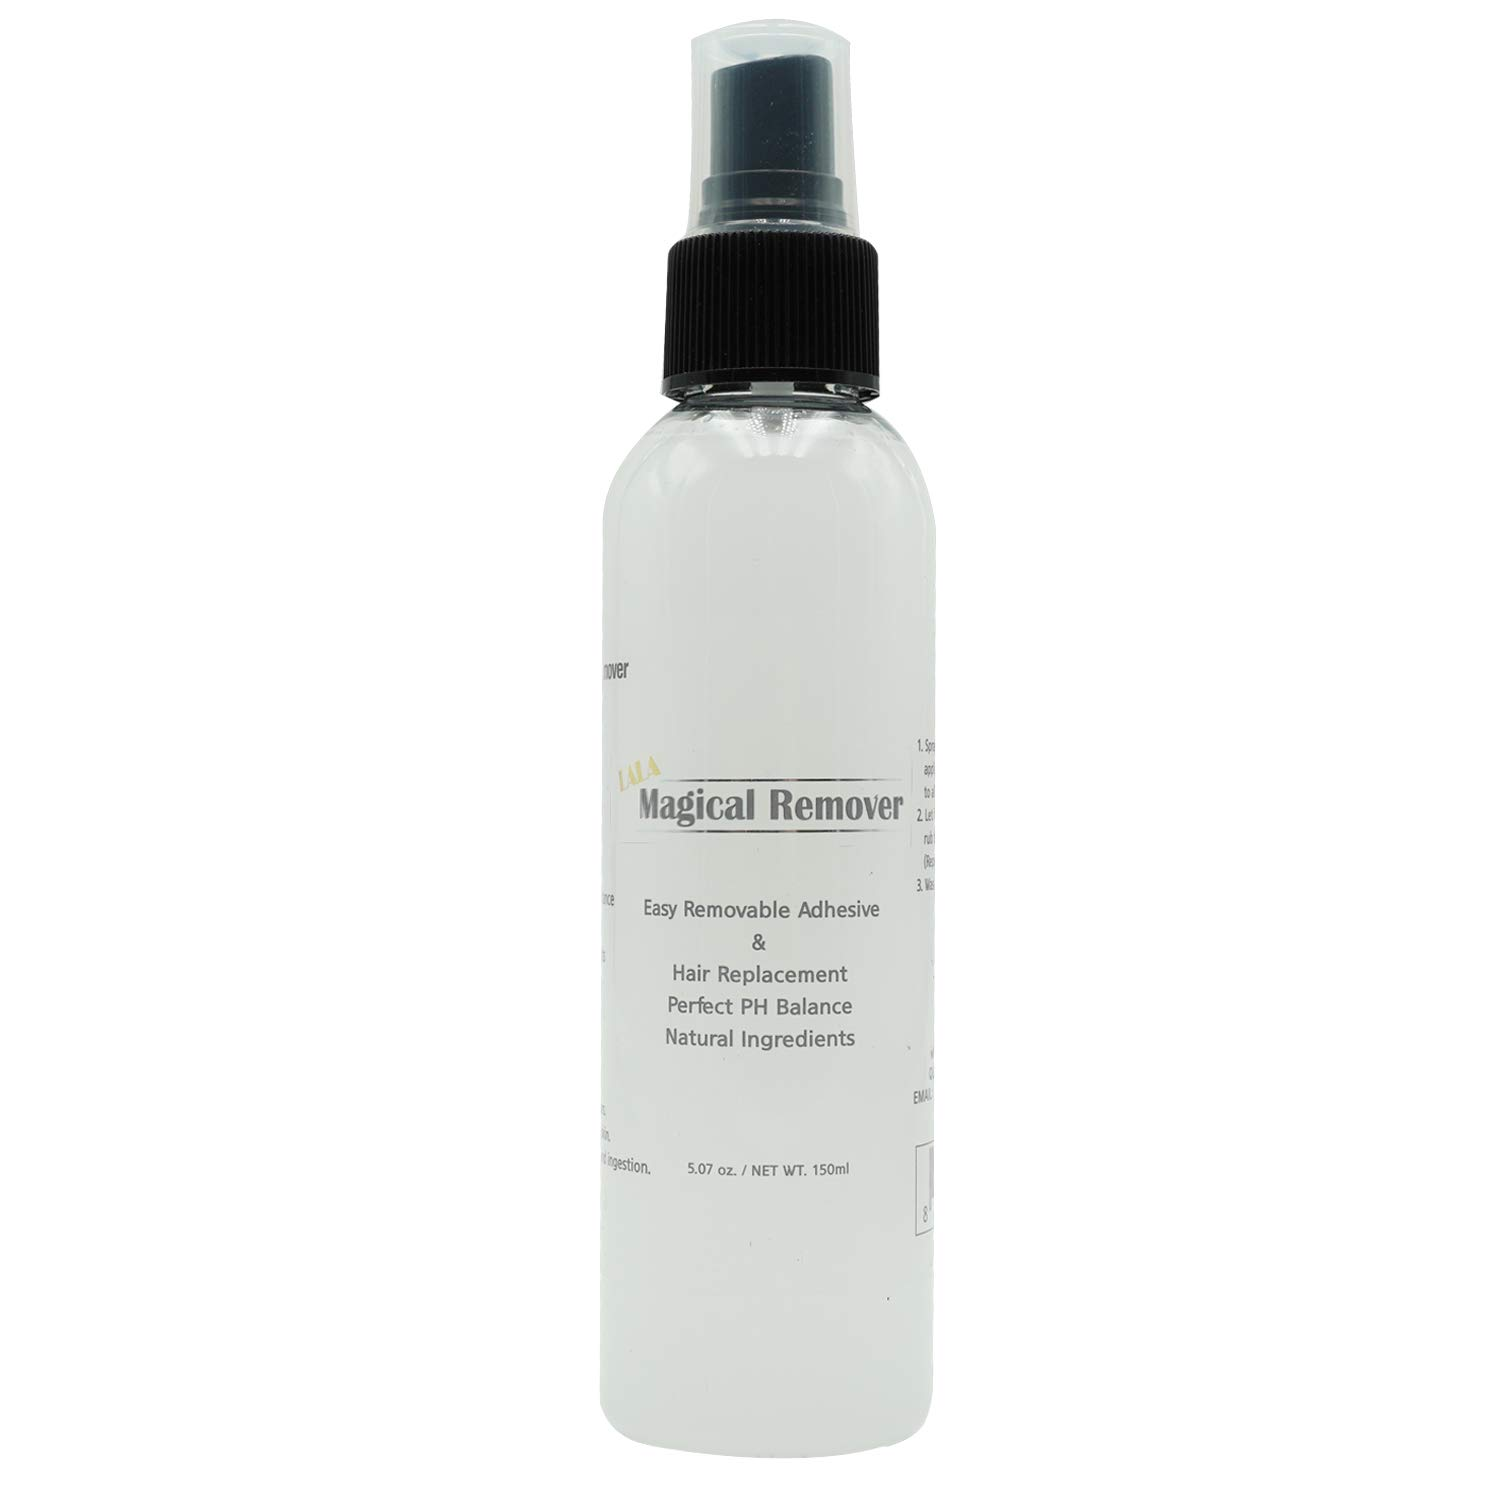 MAGICAL REMOVER 5.07oz Wig and Hair extension adhesive remover. Easy Removal